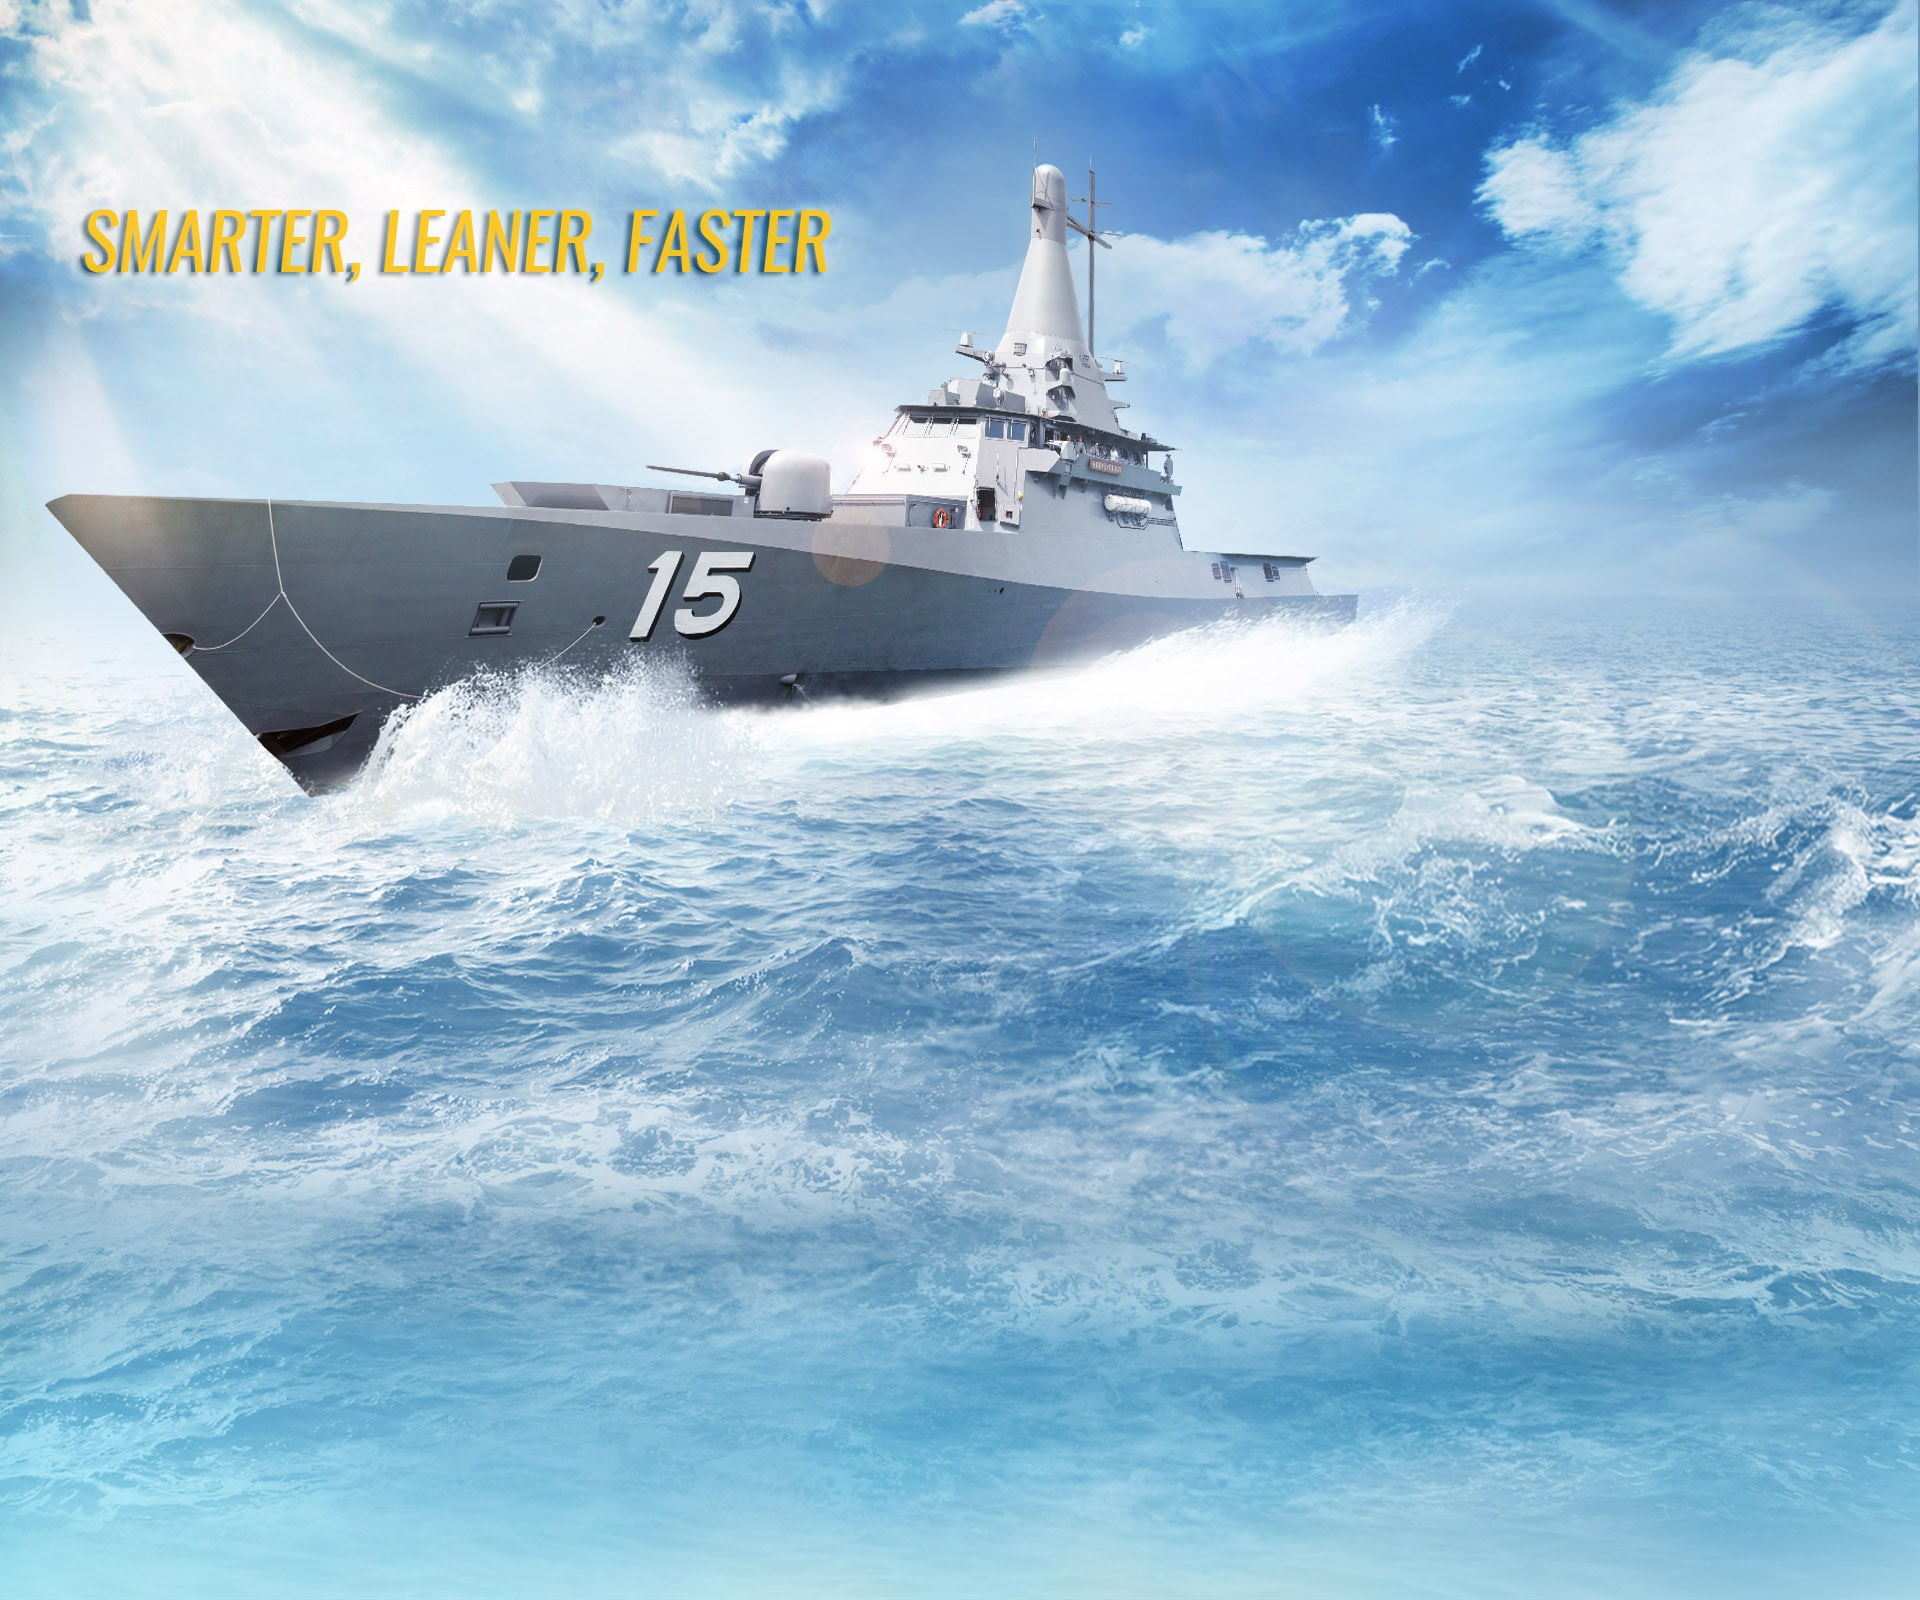 THE LITTORAL MISSION VESSEL